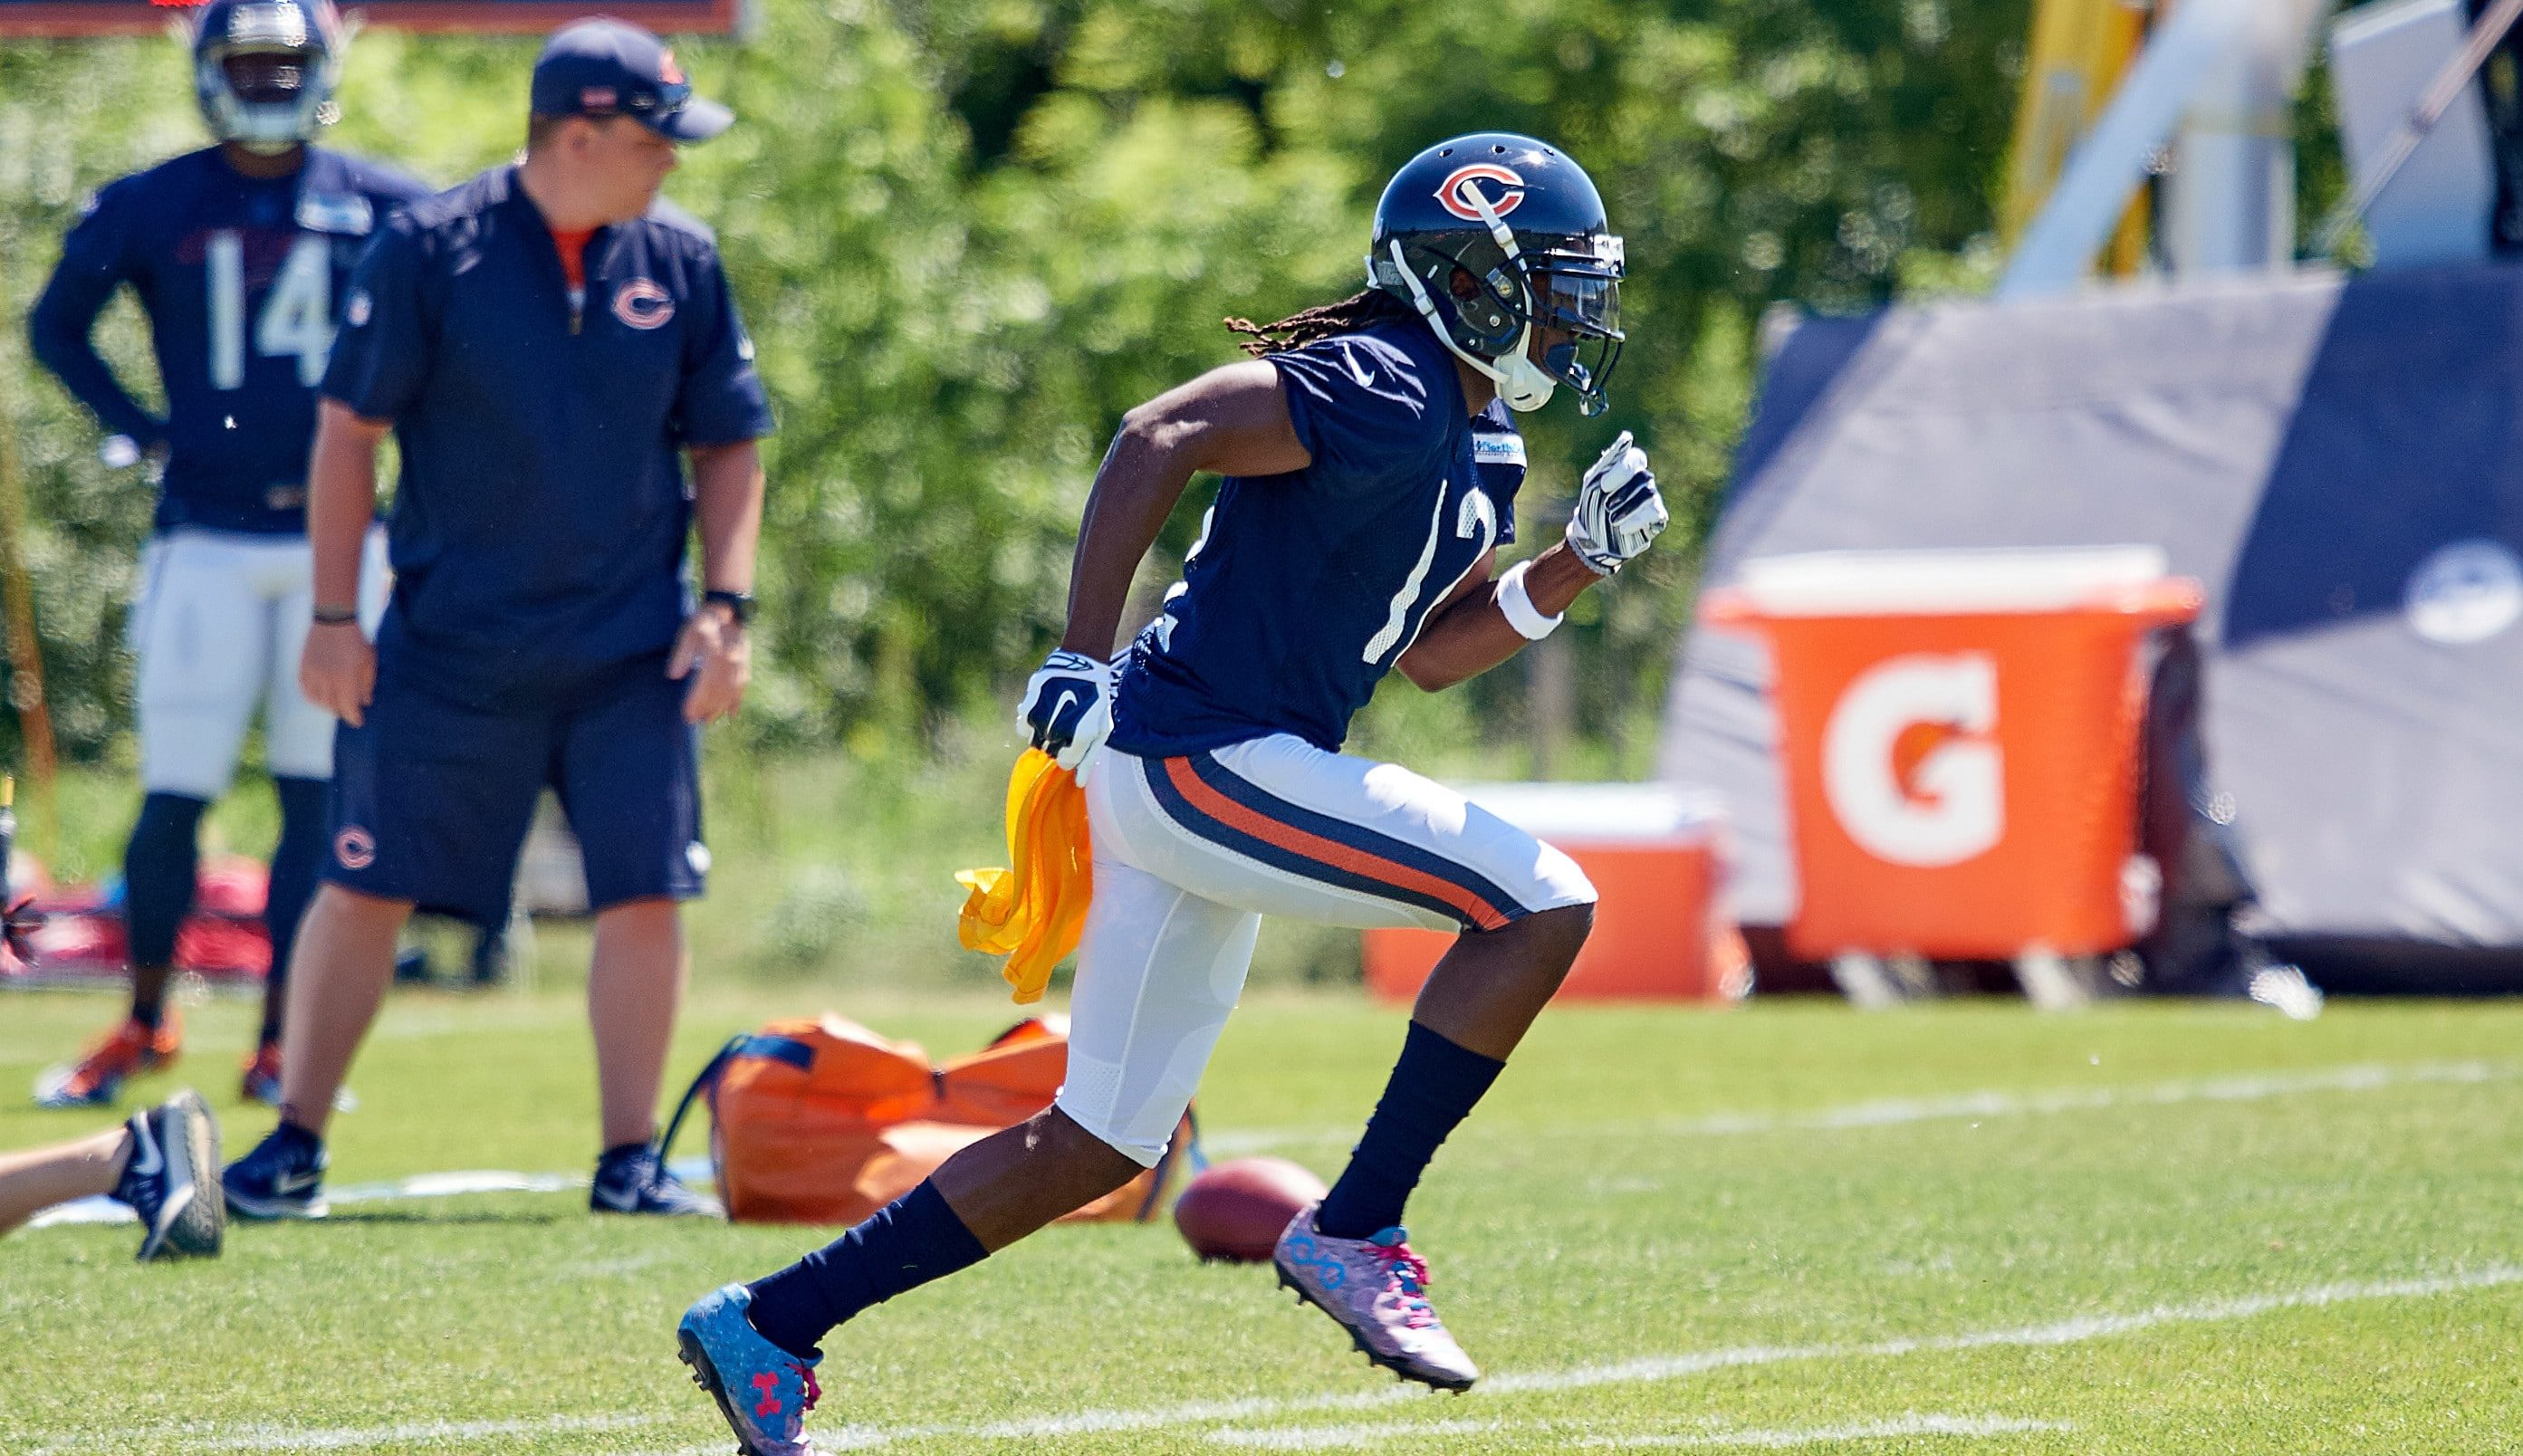 Bears wide receiver Markus Wheaton breaks finger